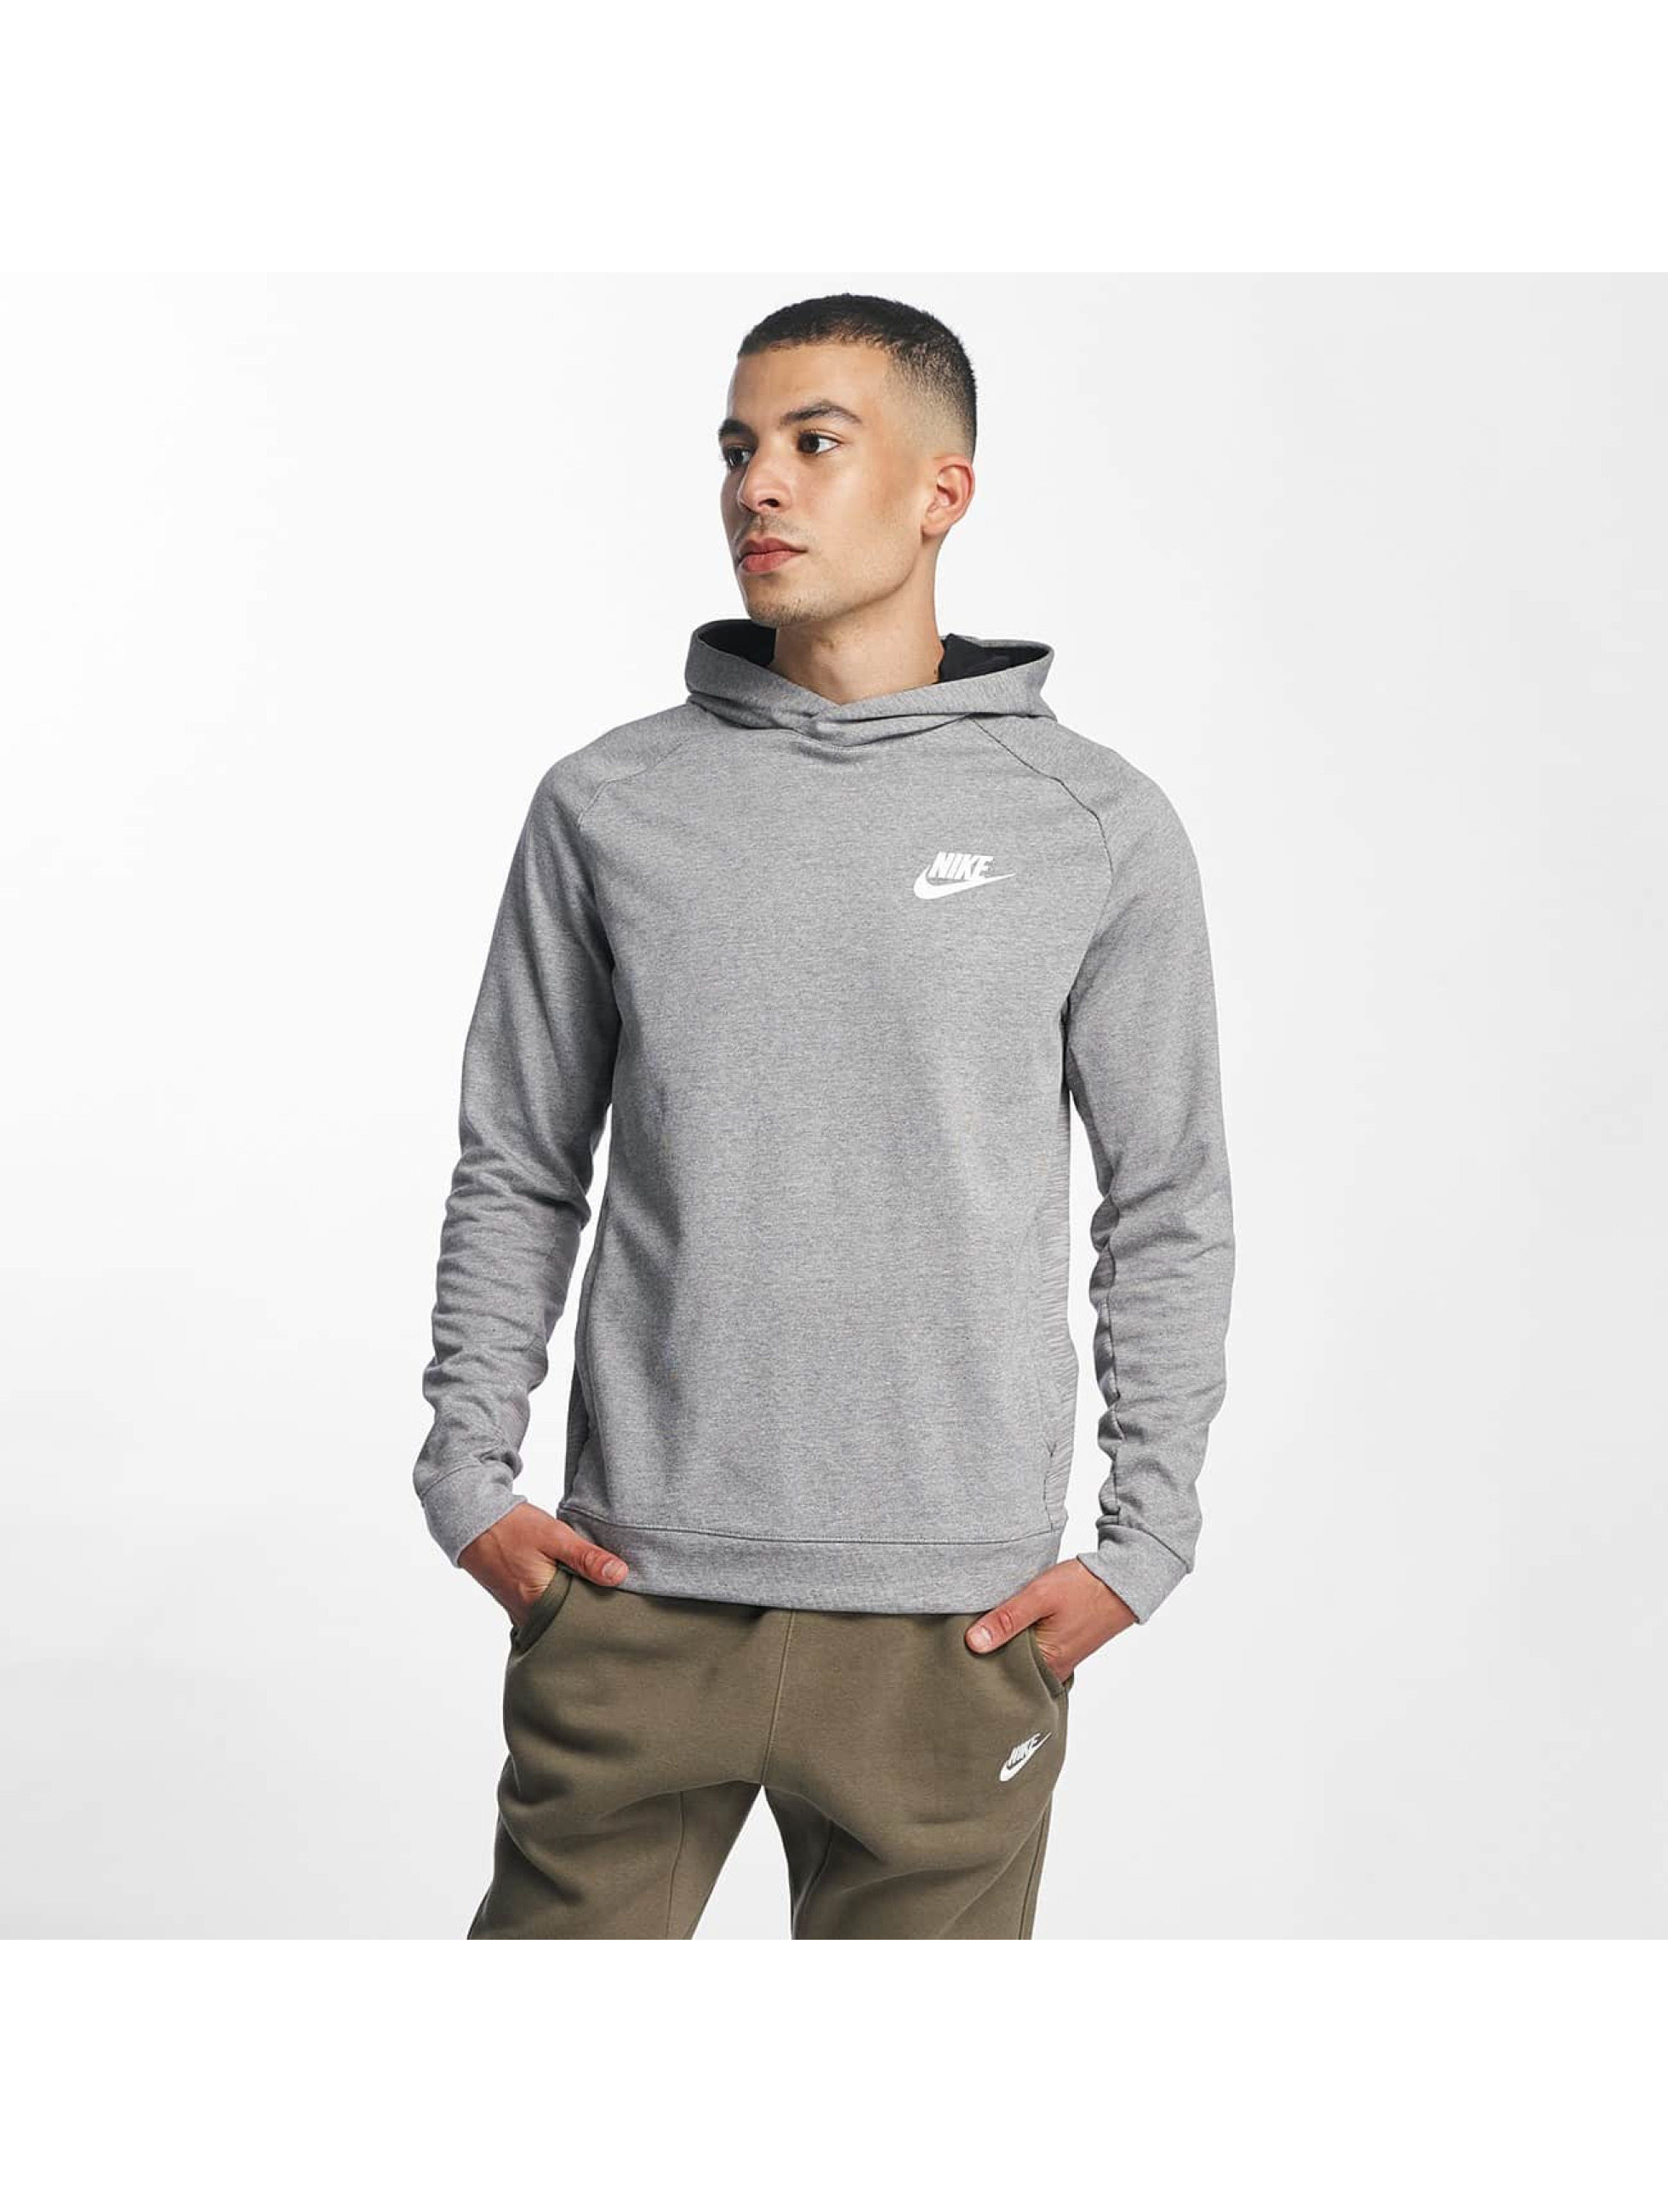 nike av15 fleece gris homme sweat capuche 336140. Black Bedroom Furniture Sets. Home Design Ideas